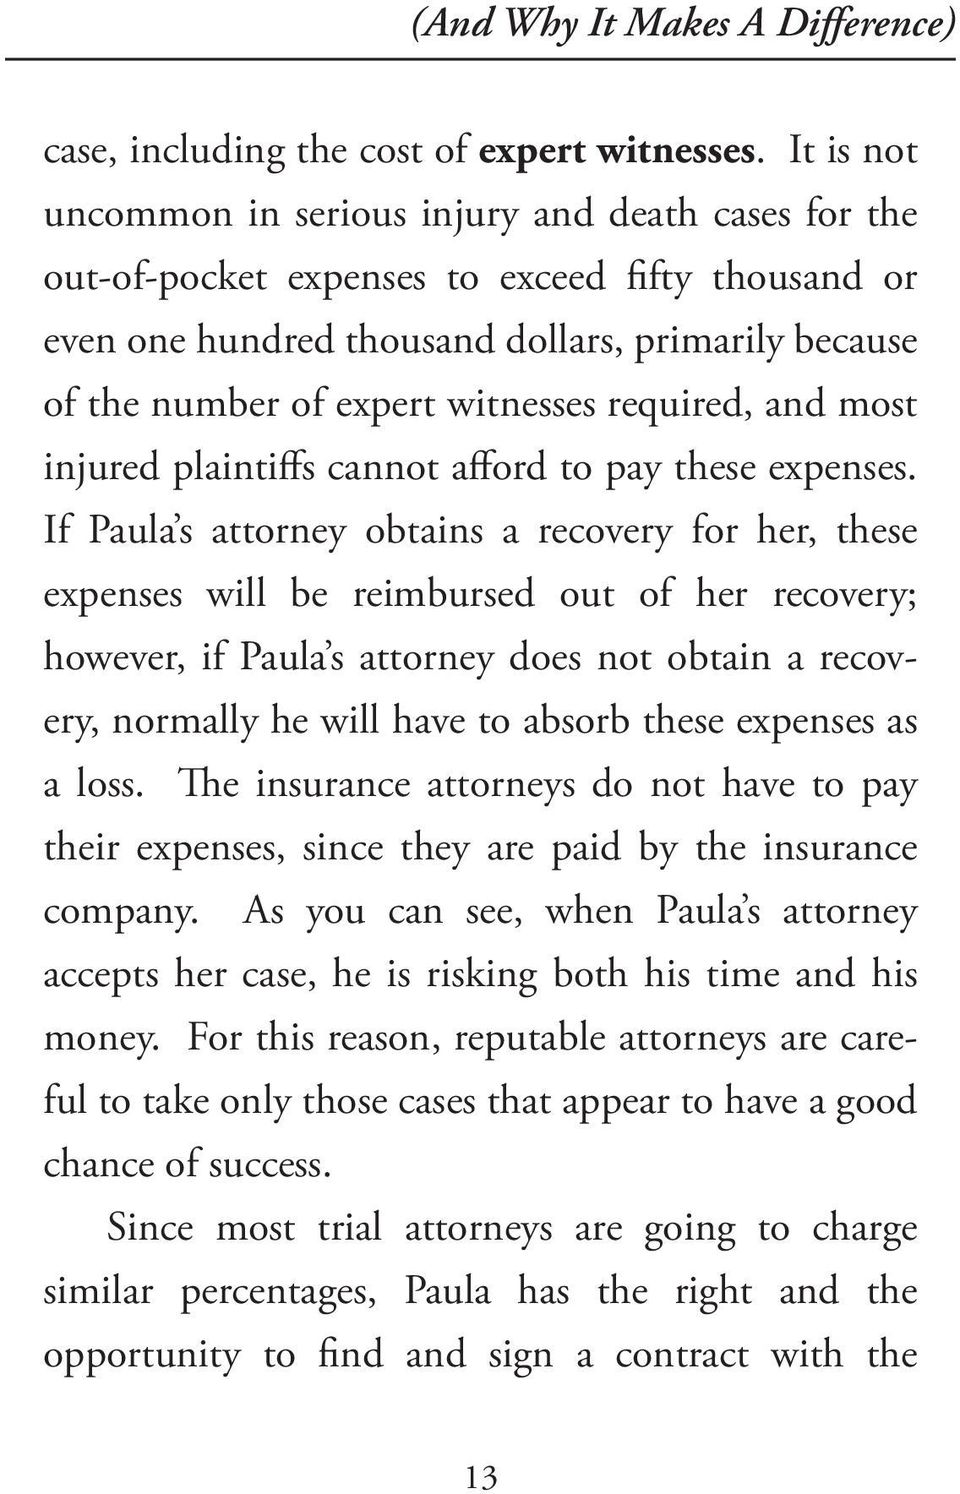 required, and most injured plaintiffs cannot afford to pay these expenses.